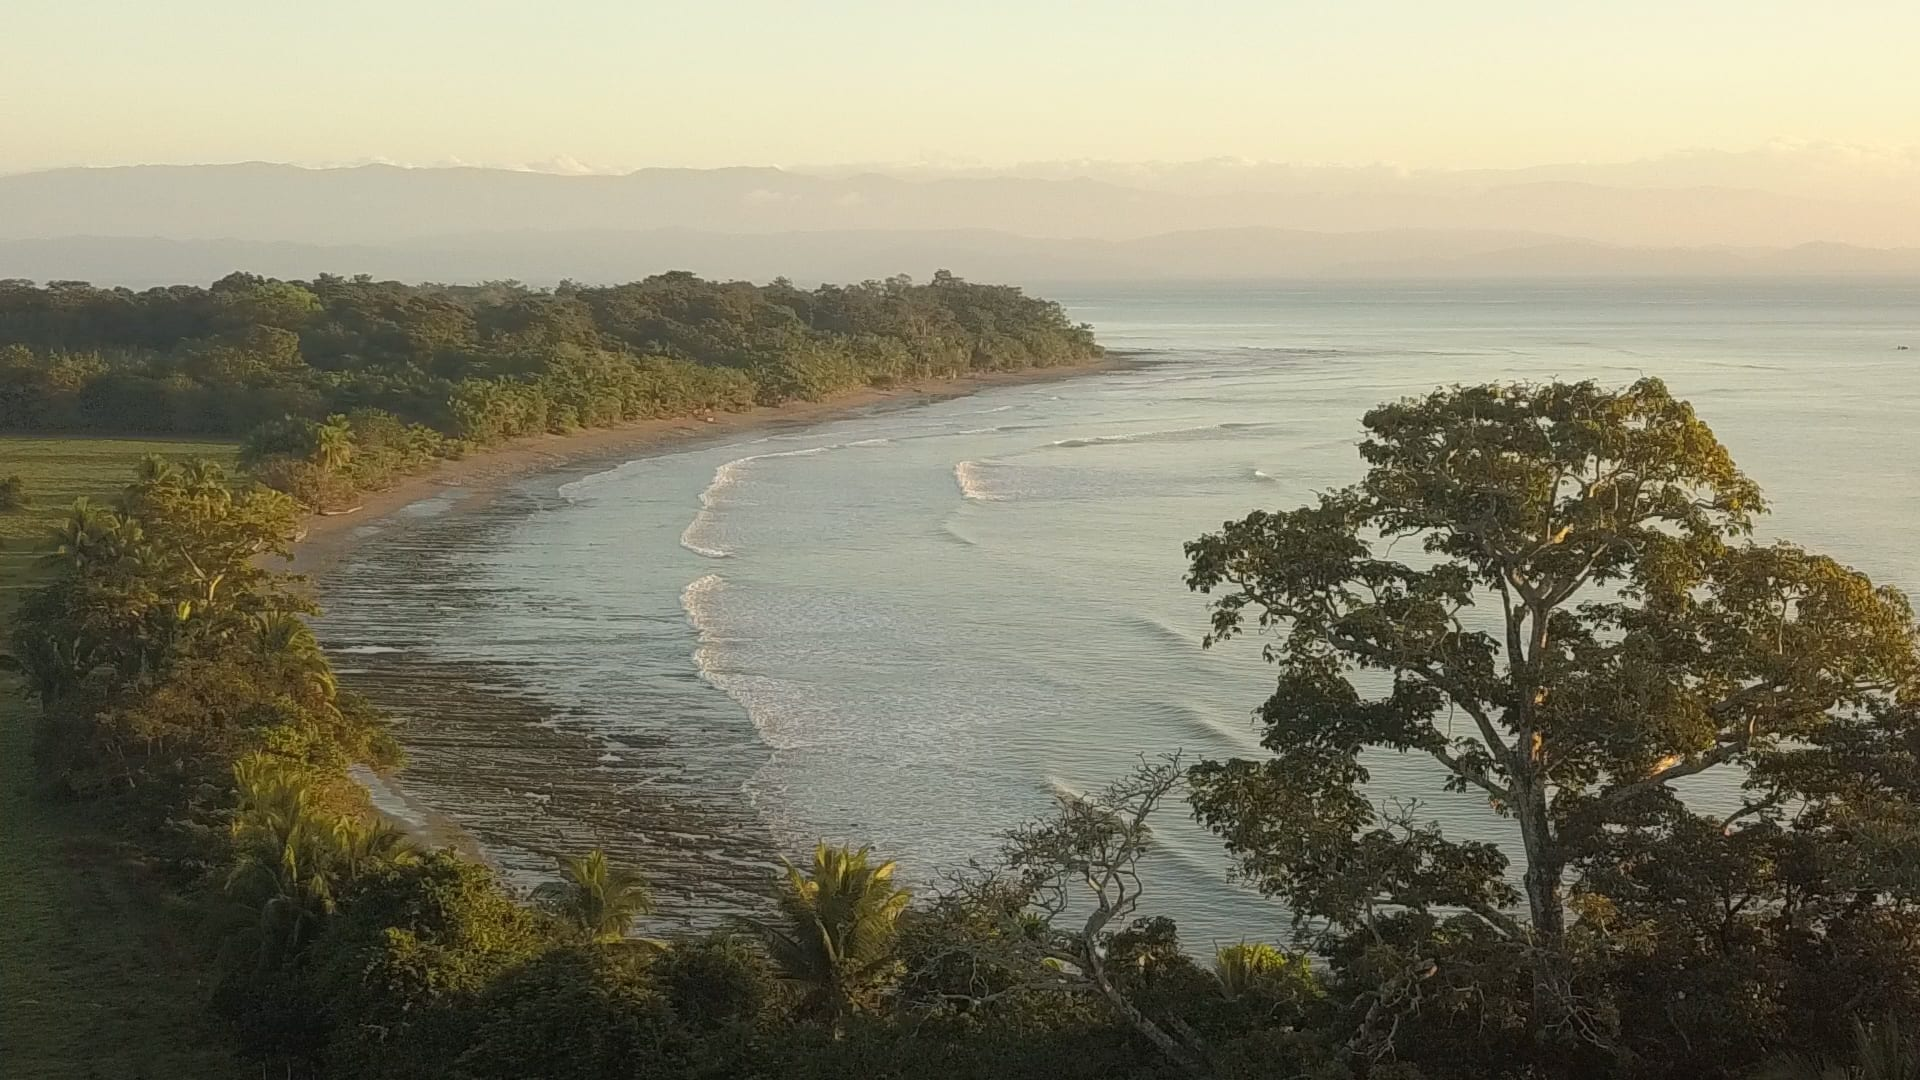 Osa Peninsula has options for people who loves quiet and ecological places. There are multiple tiny towns on the coast part, with an easy access to rain forest hikes and beach zones.